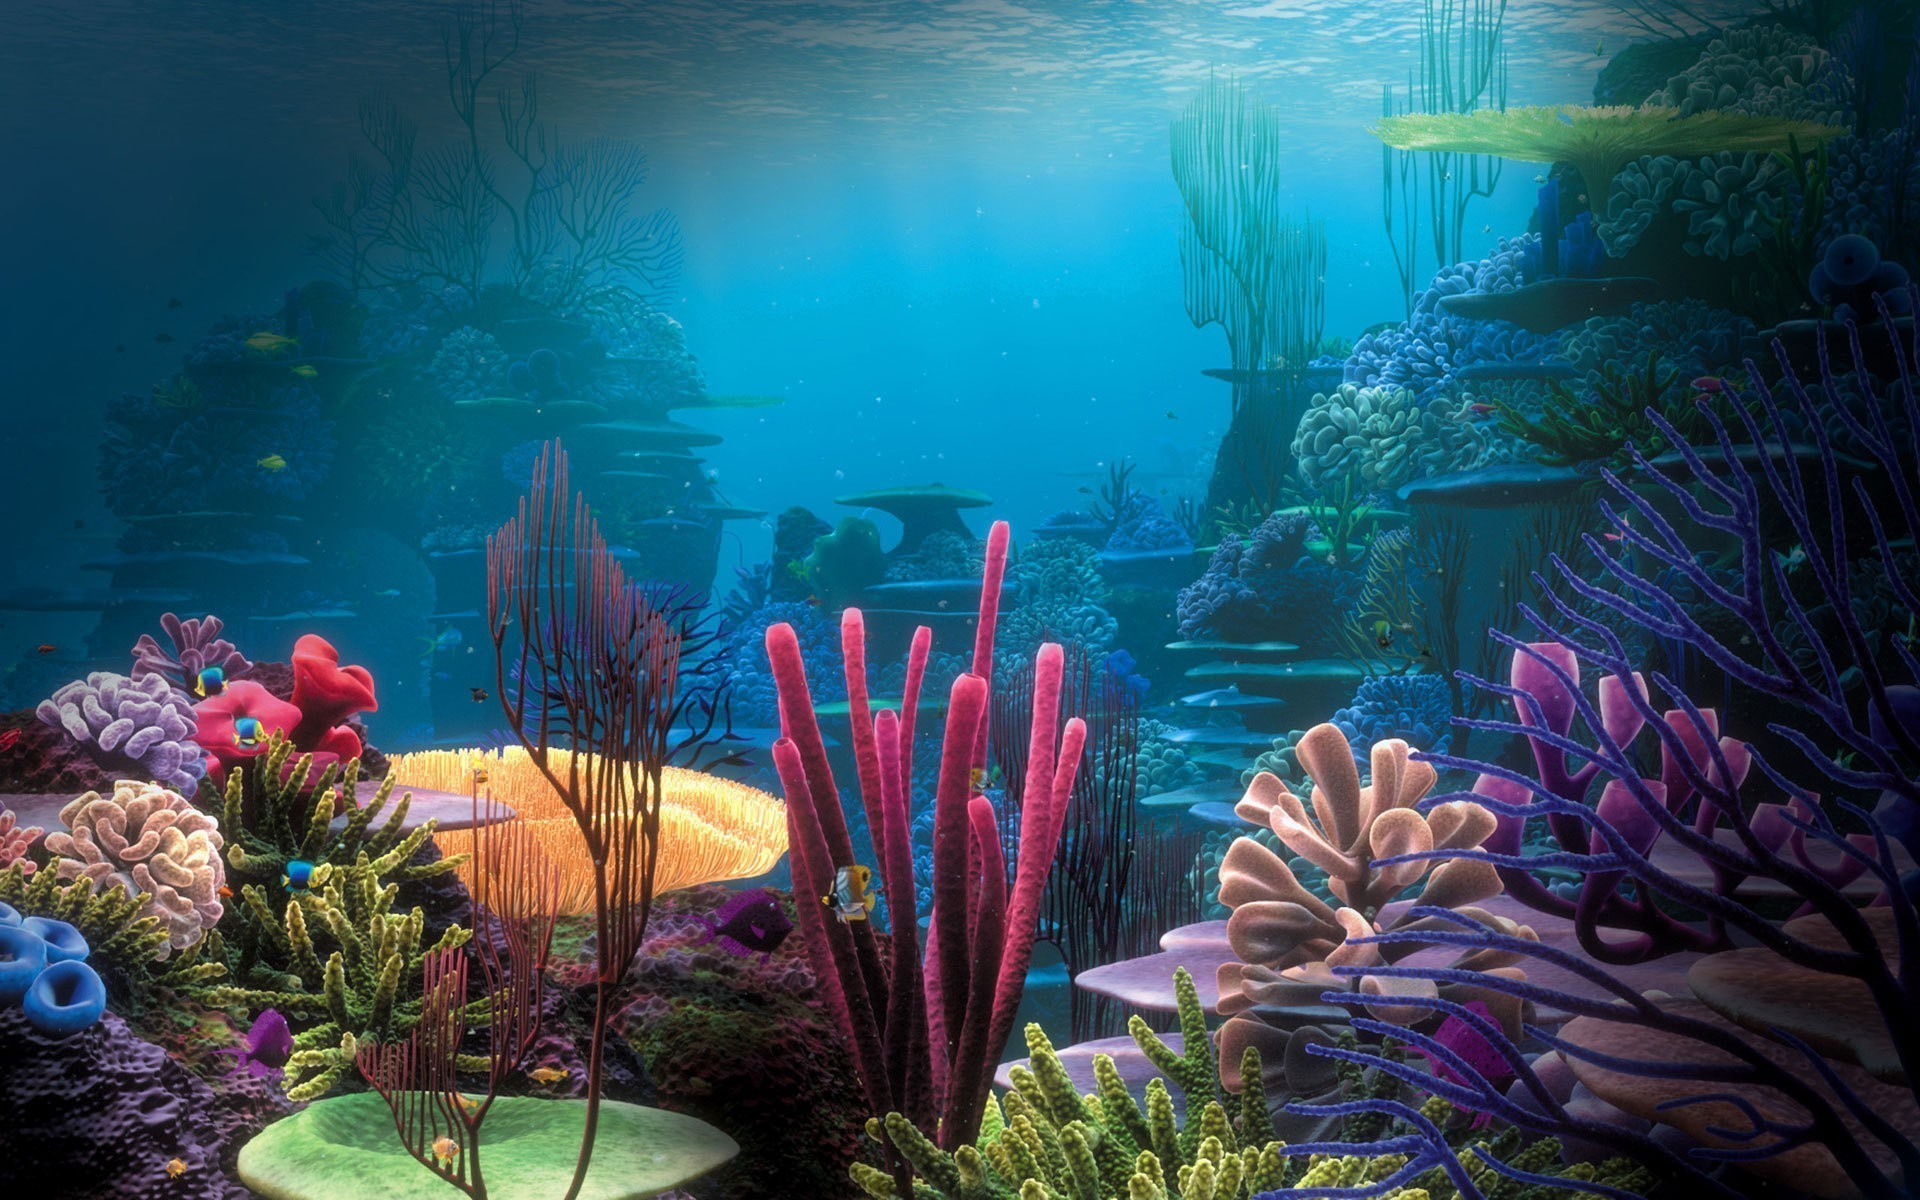 1920x1200 Marine life underwater fish ocean coral water reef sea tropical HD wallpaper.  Android wallpapers for free.